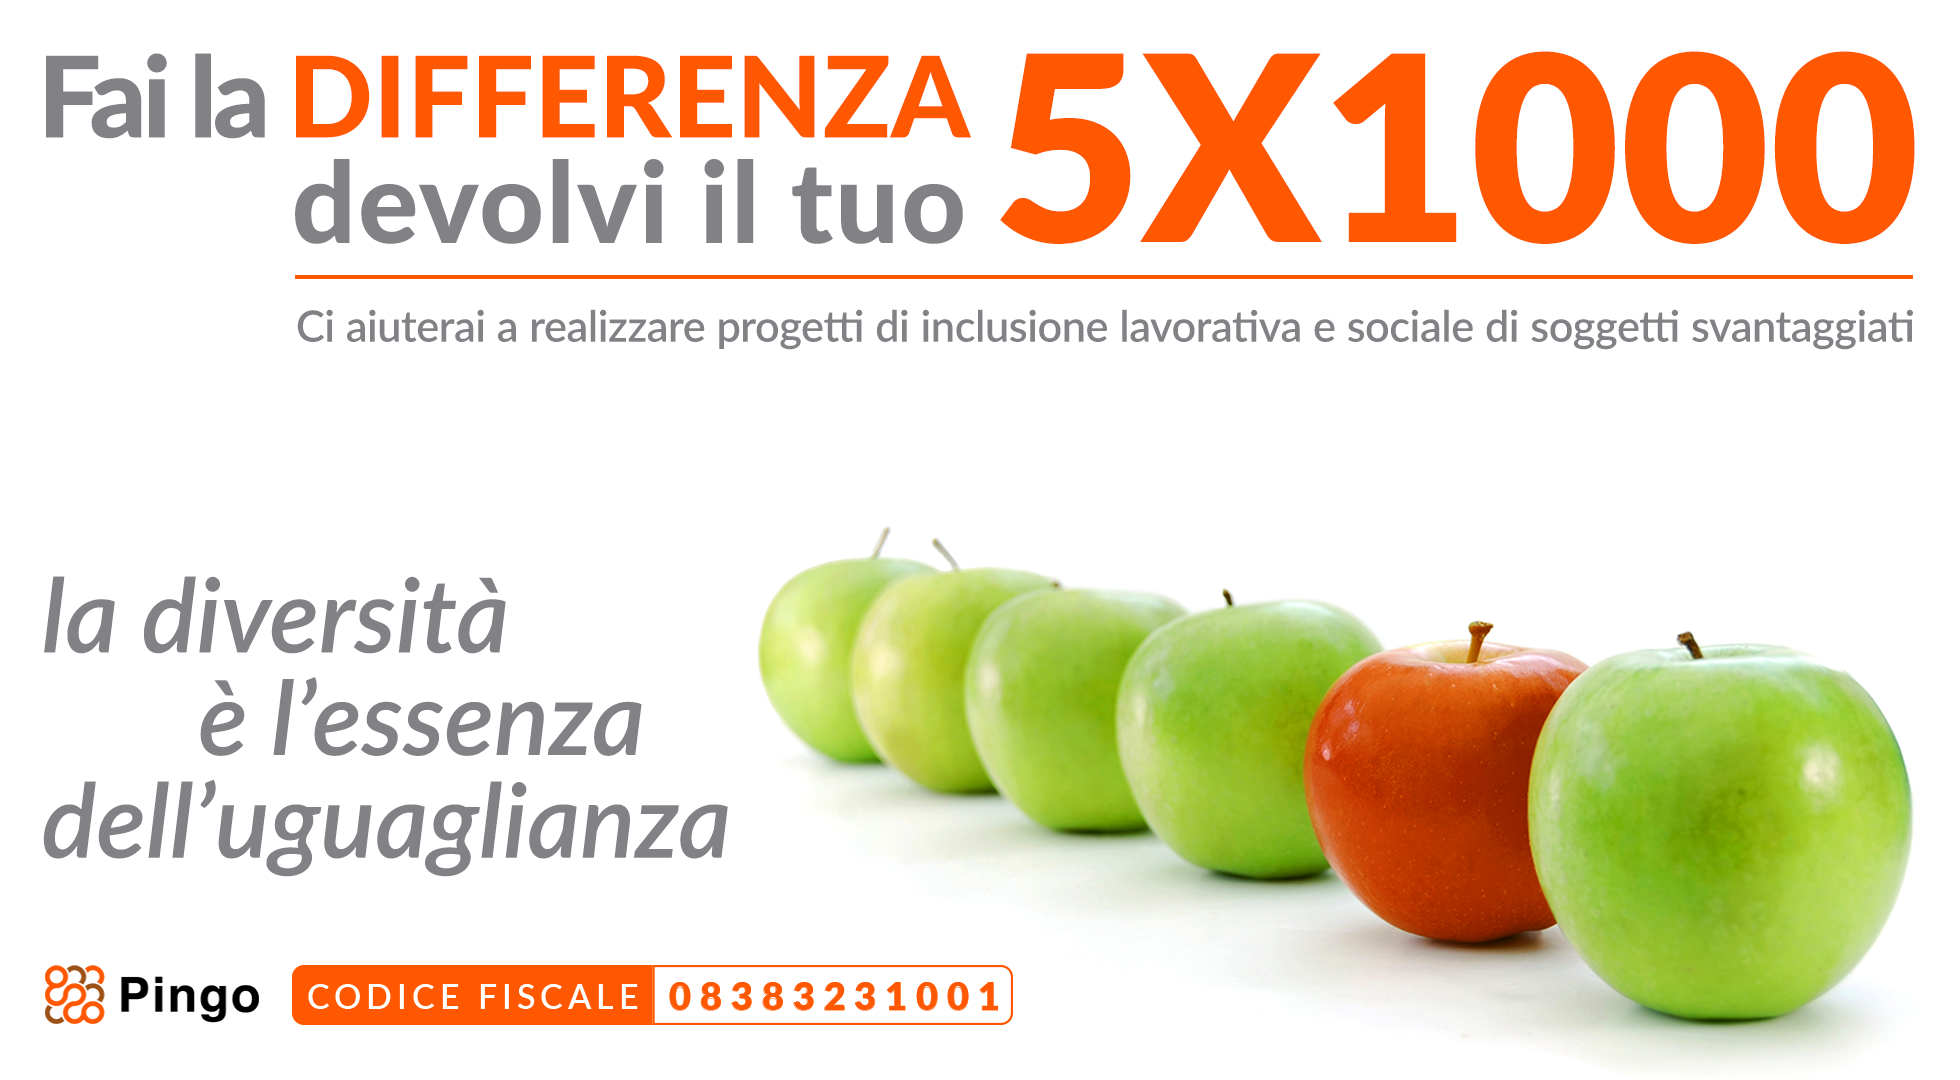 Devolvi il tuo 5x1000 a Pingo, fai la differenza!